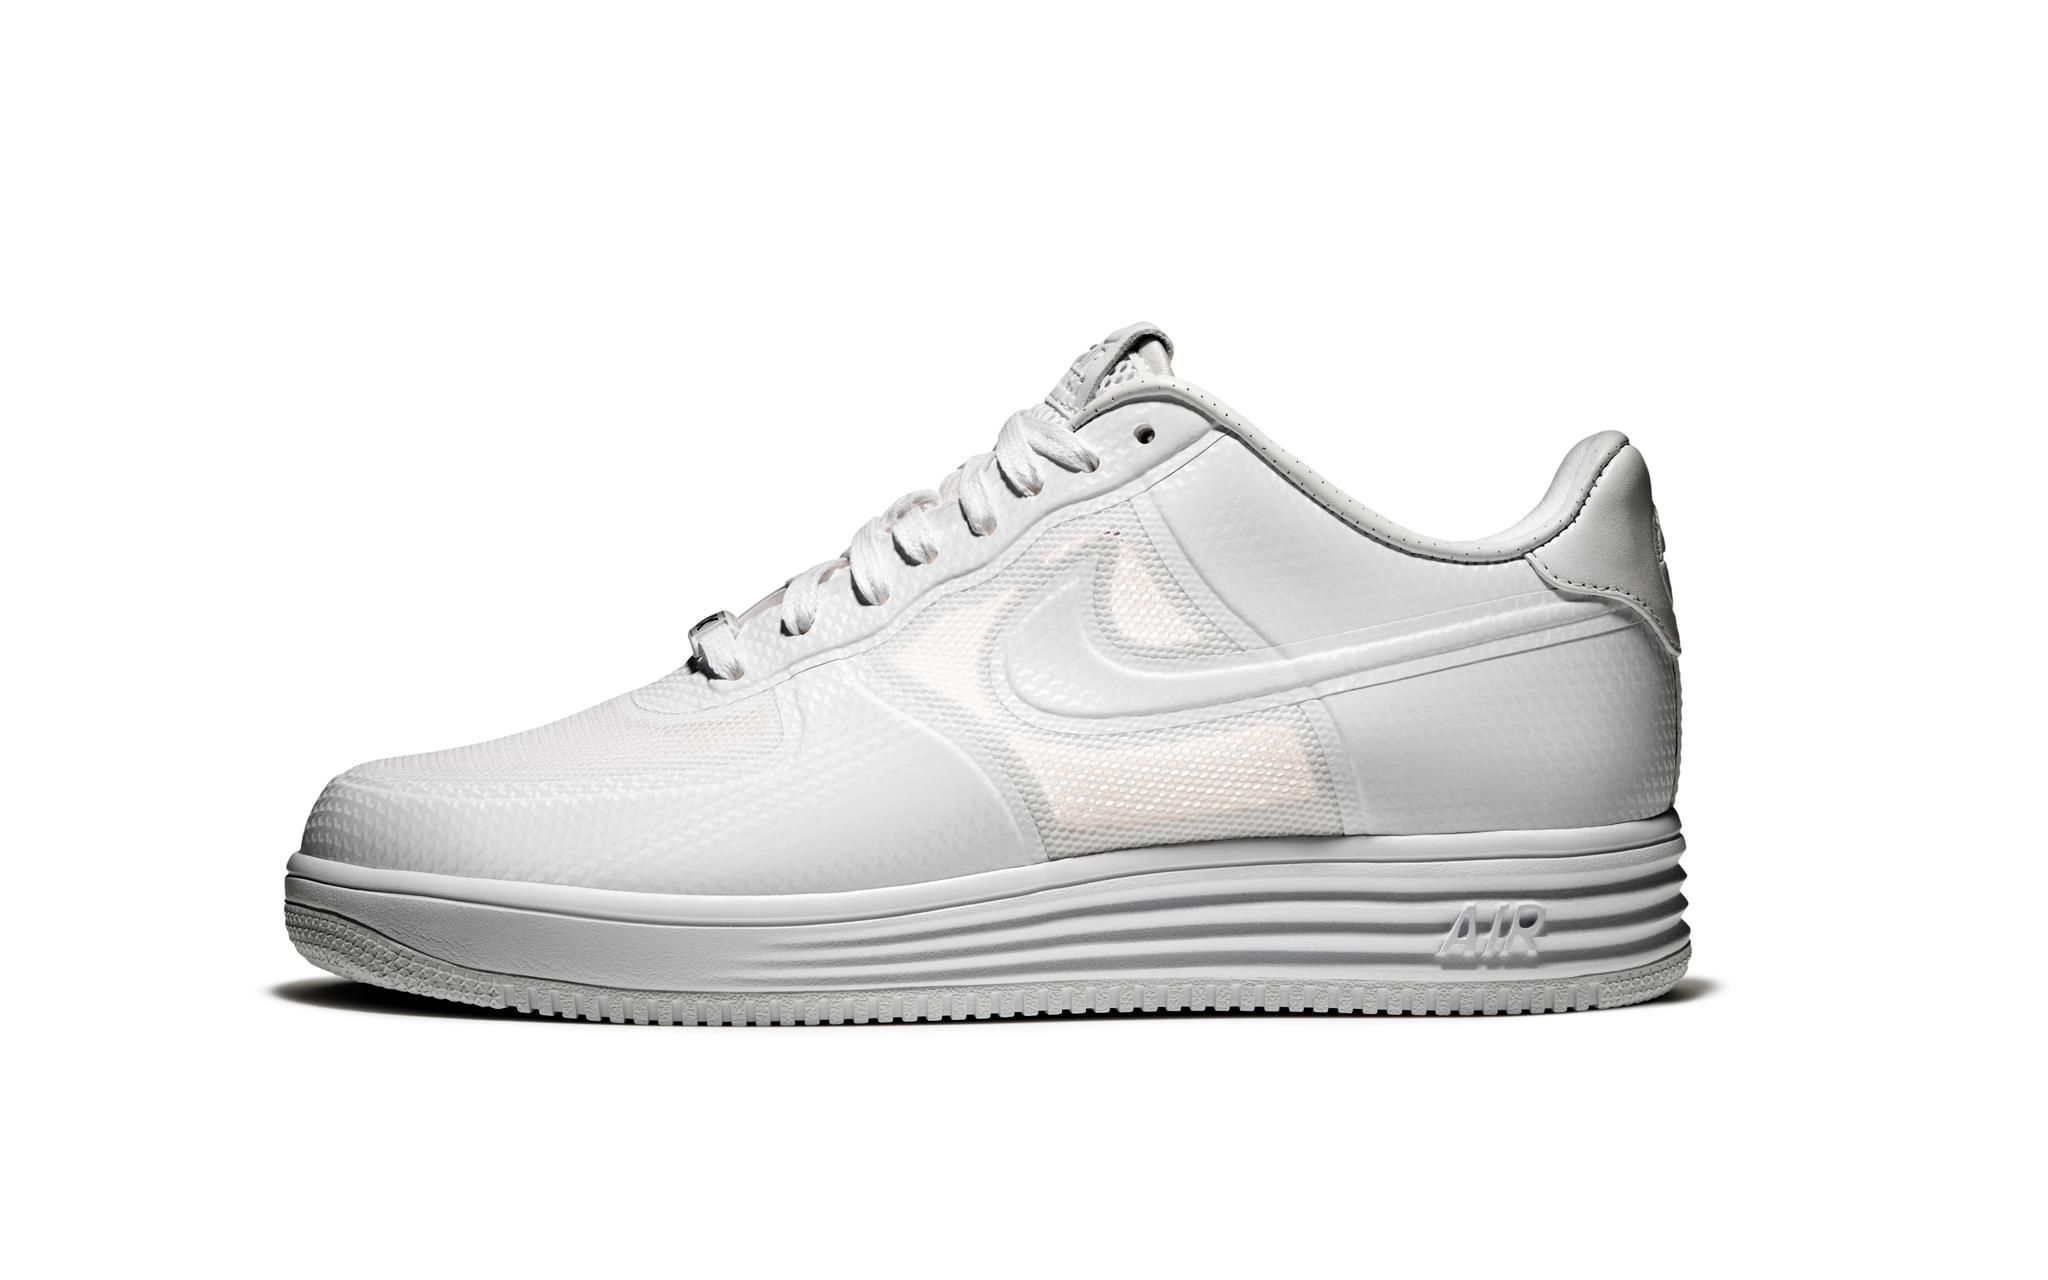 44c097bd5b23a8 Nike Lunar Force 1.